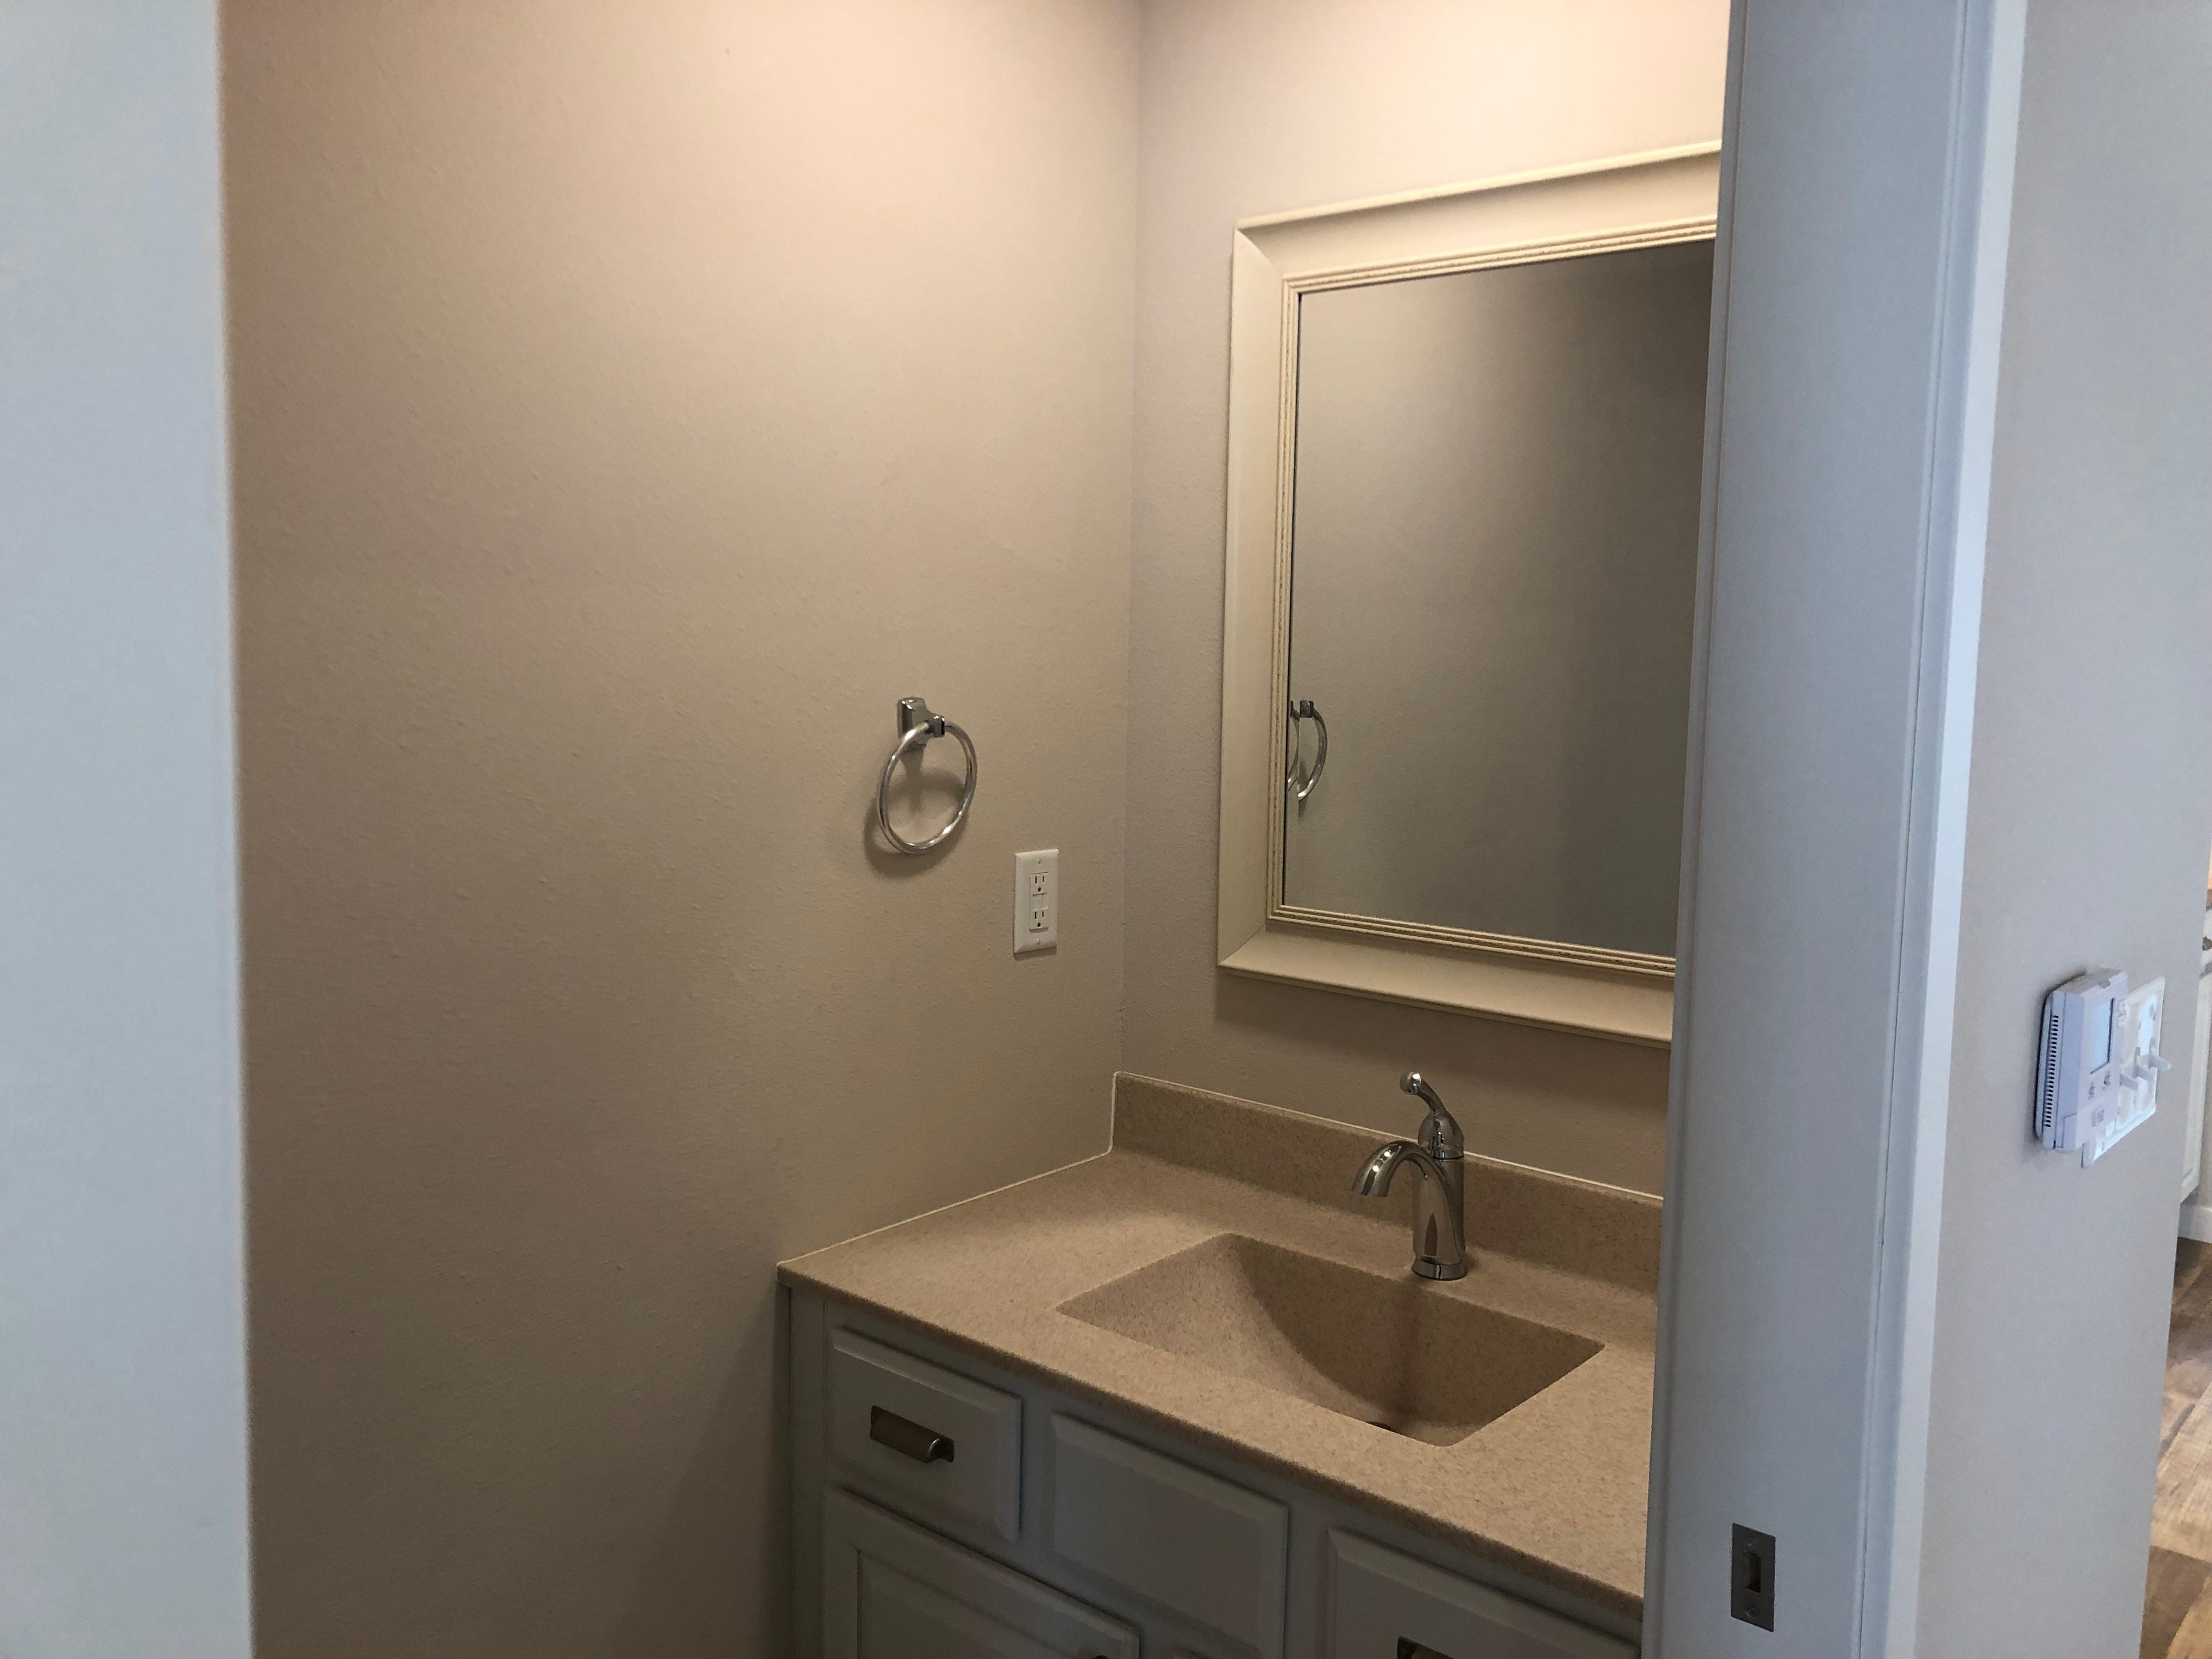 A half-bath in the River East Town Homes in Wausau.